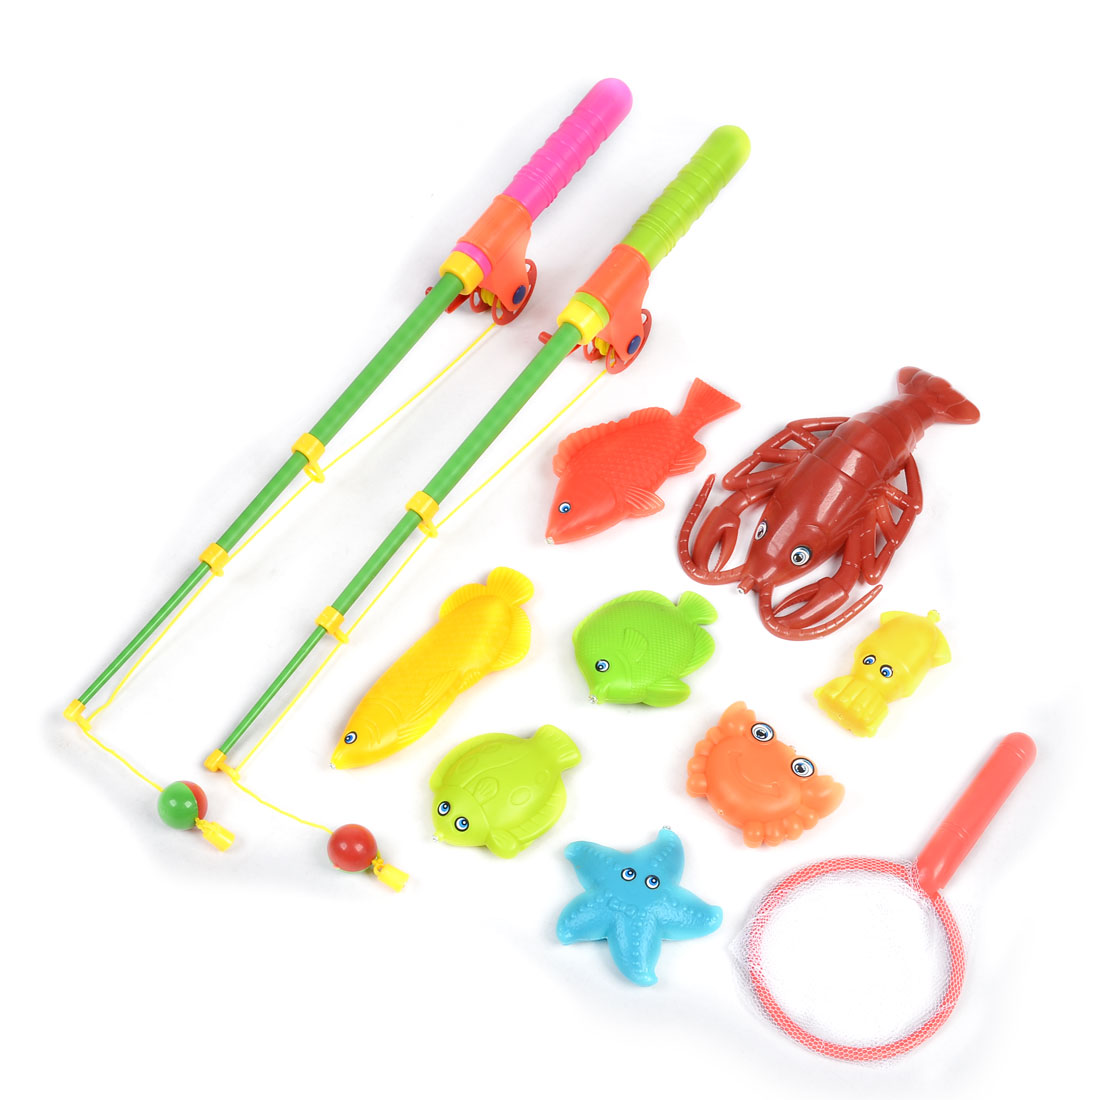 11 in 1 Plastic Telescopic Rods Magnetic Crab Octopus Starfish Fishing Toy Set for Kids